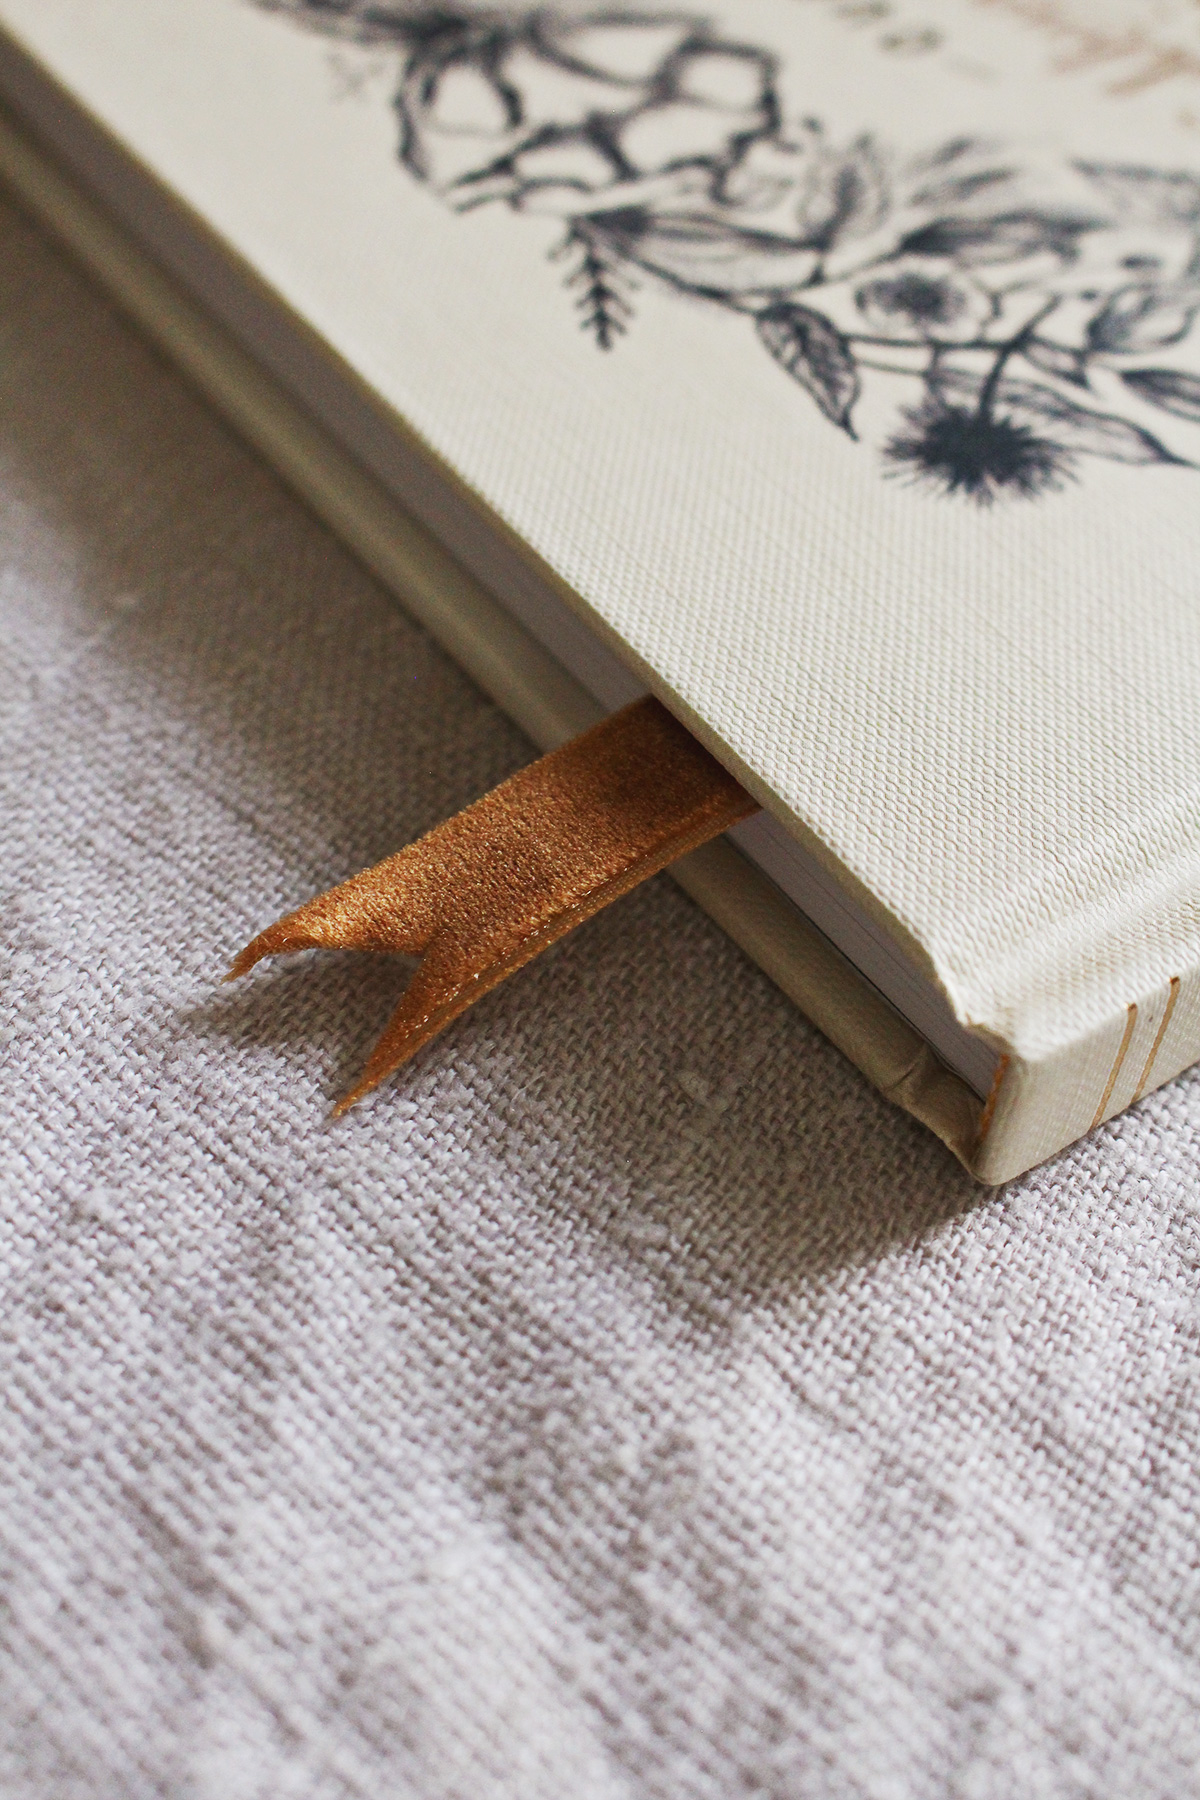 How To Use The Bookmark in Your L&V Wedding Guestbook